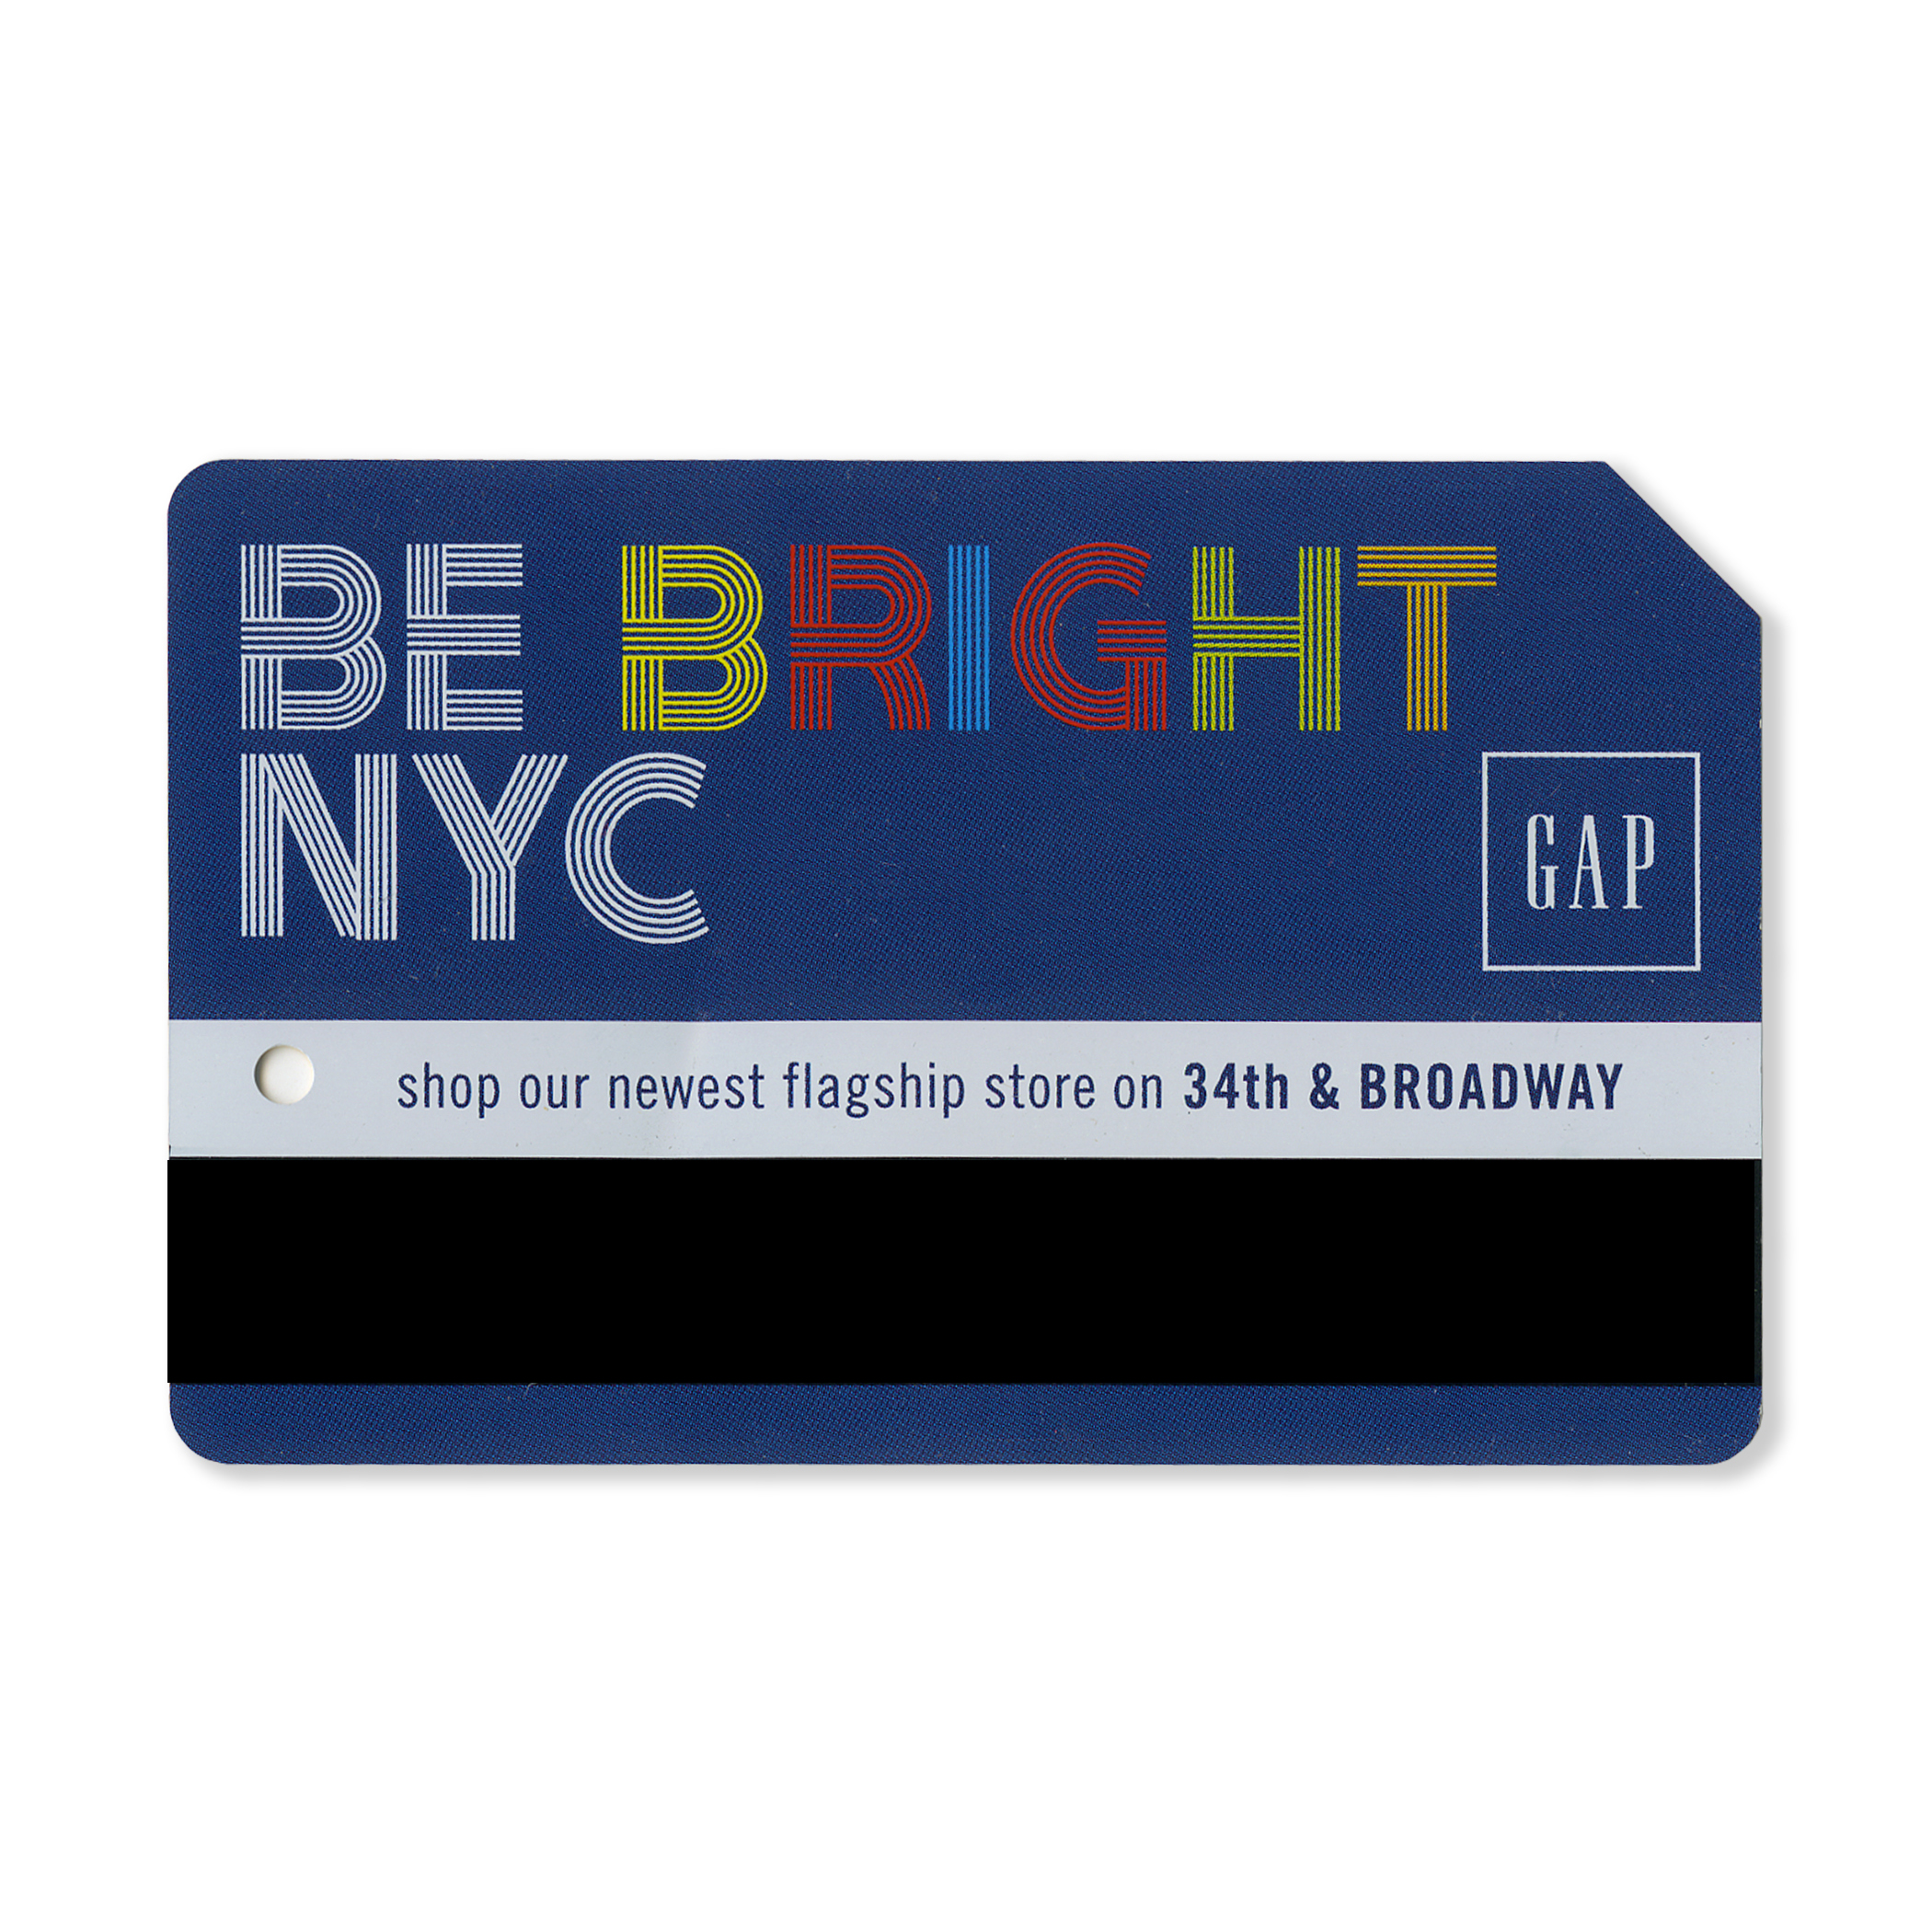 the_nycta_project_gap_be_bright_metrocard.jpg